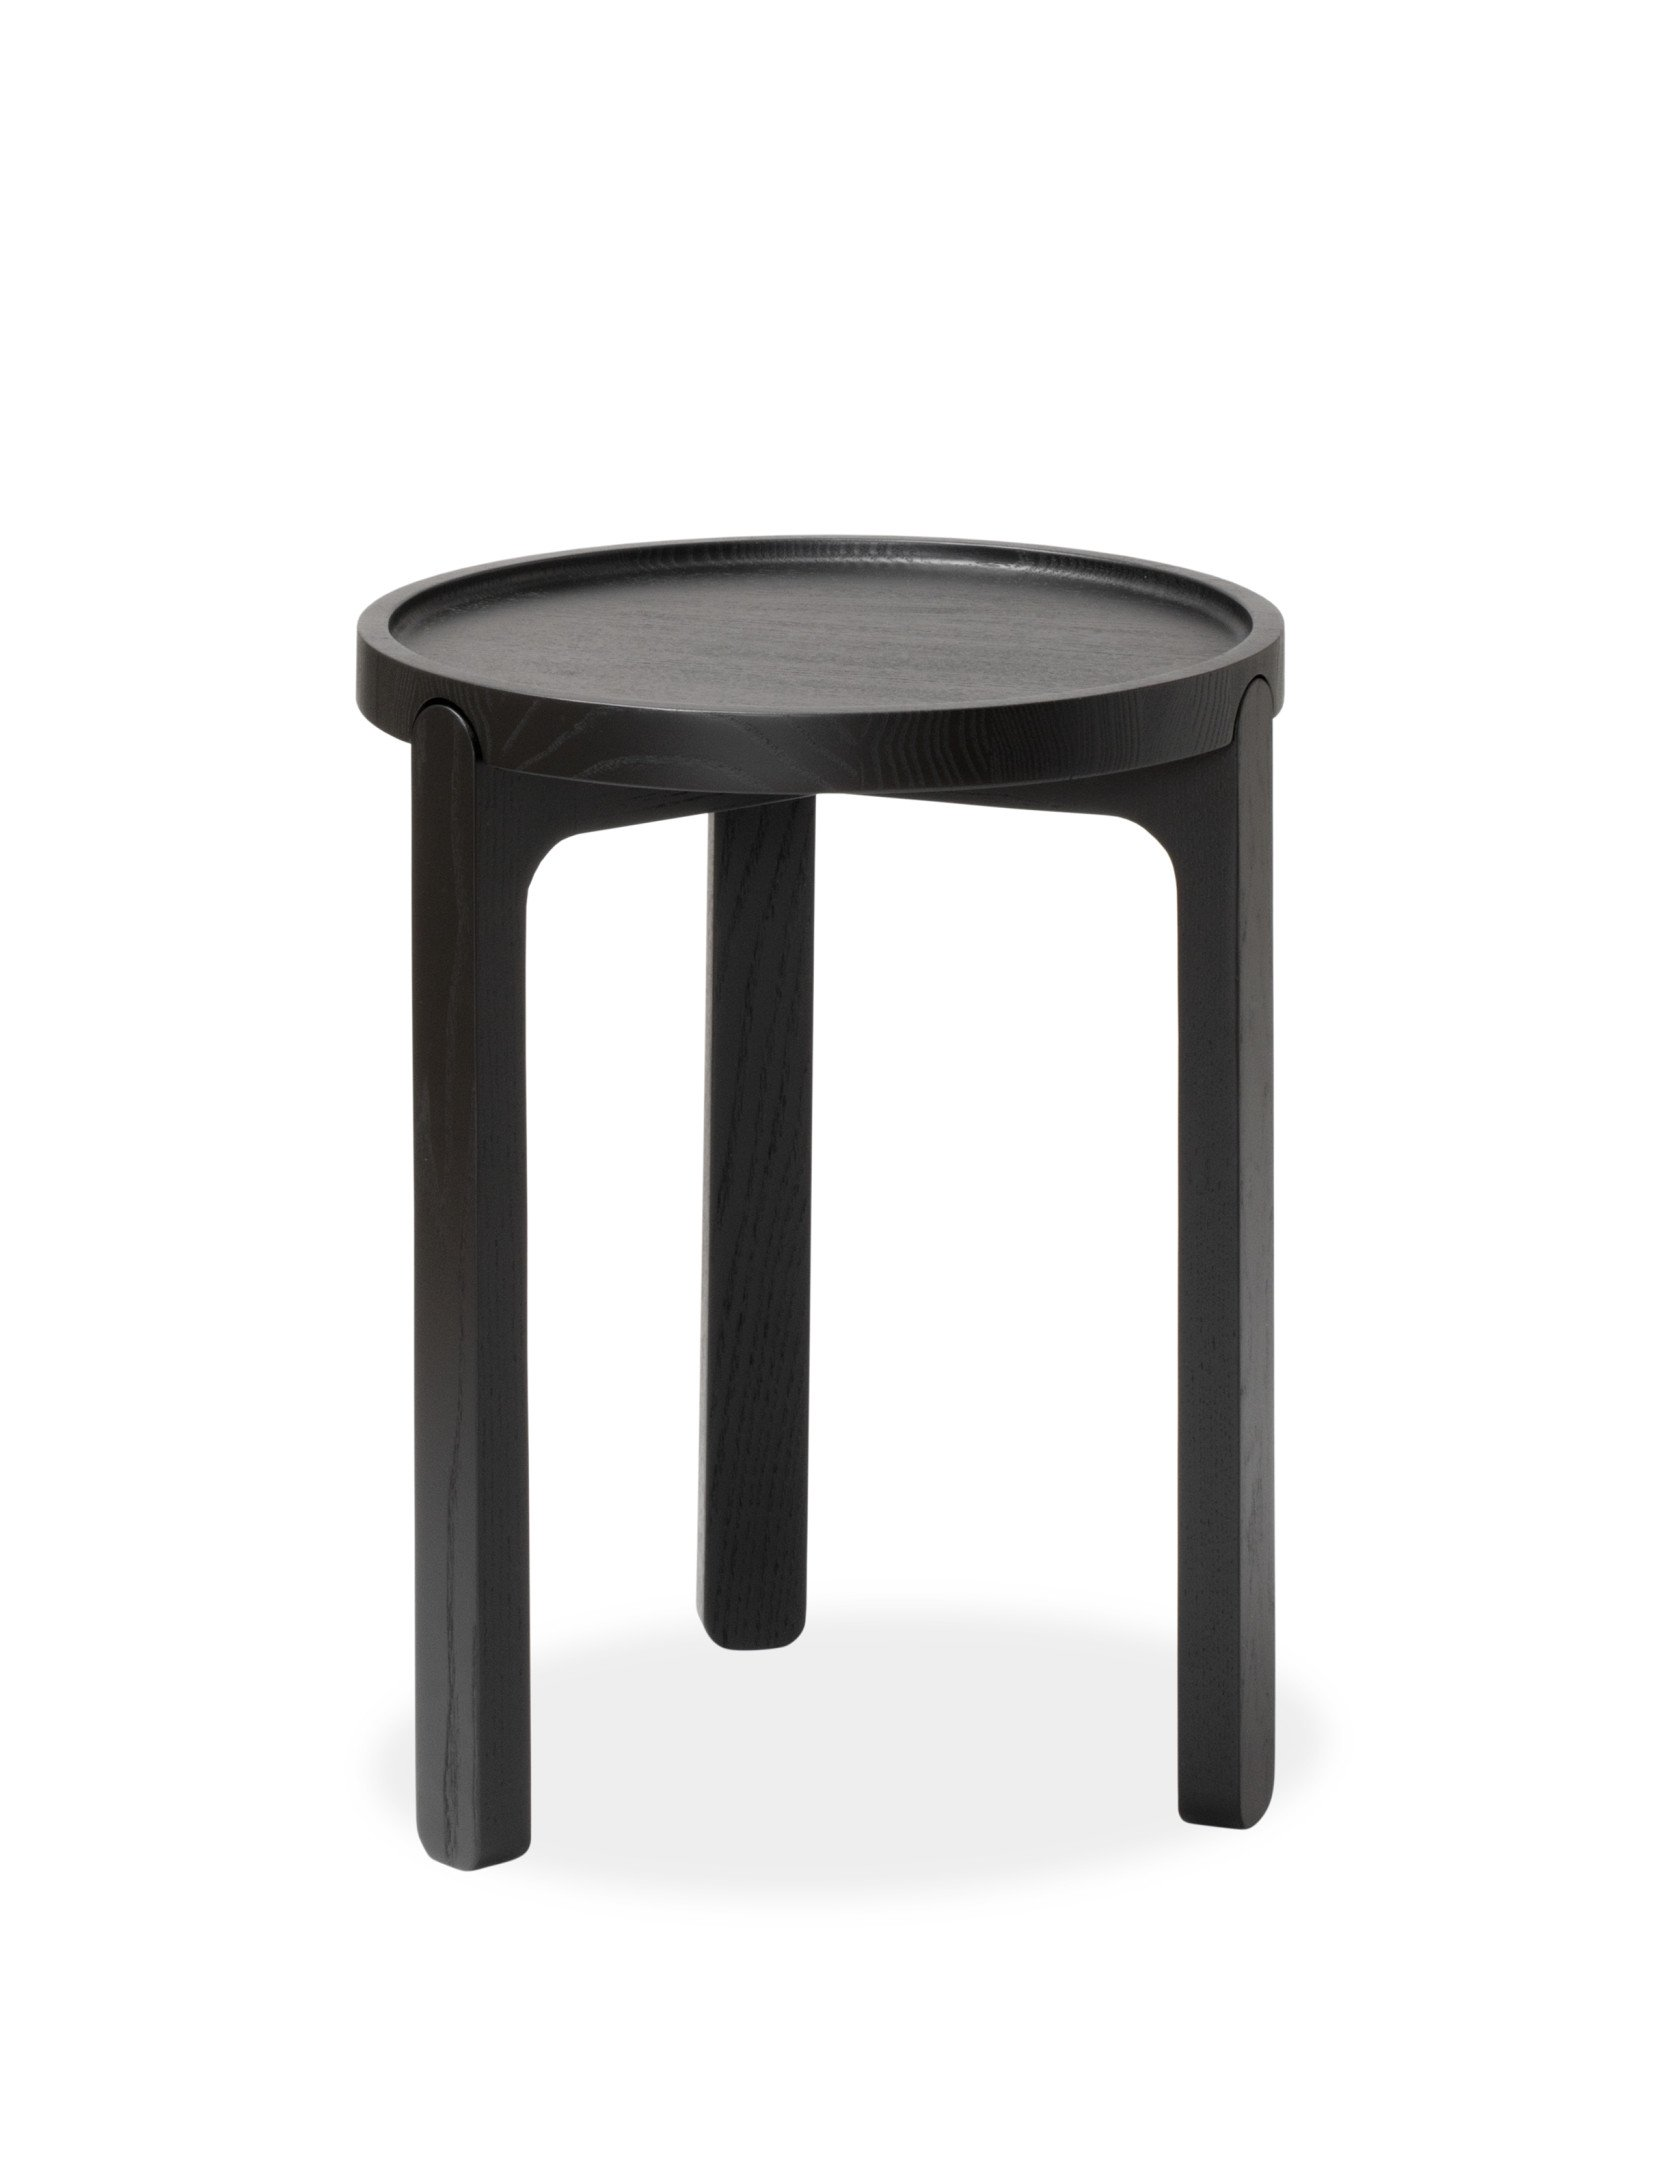 Indskud Tray Table 34 by T. S. Steffensen for Skagerak